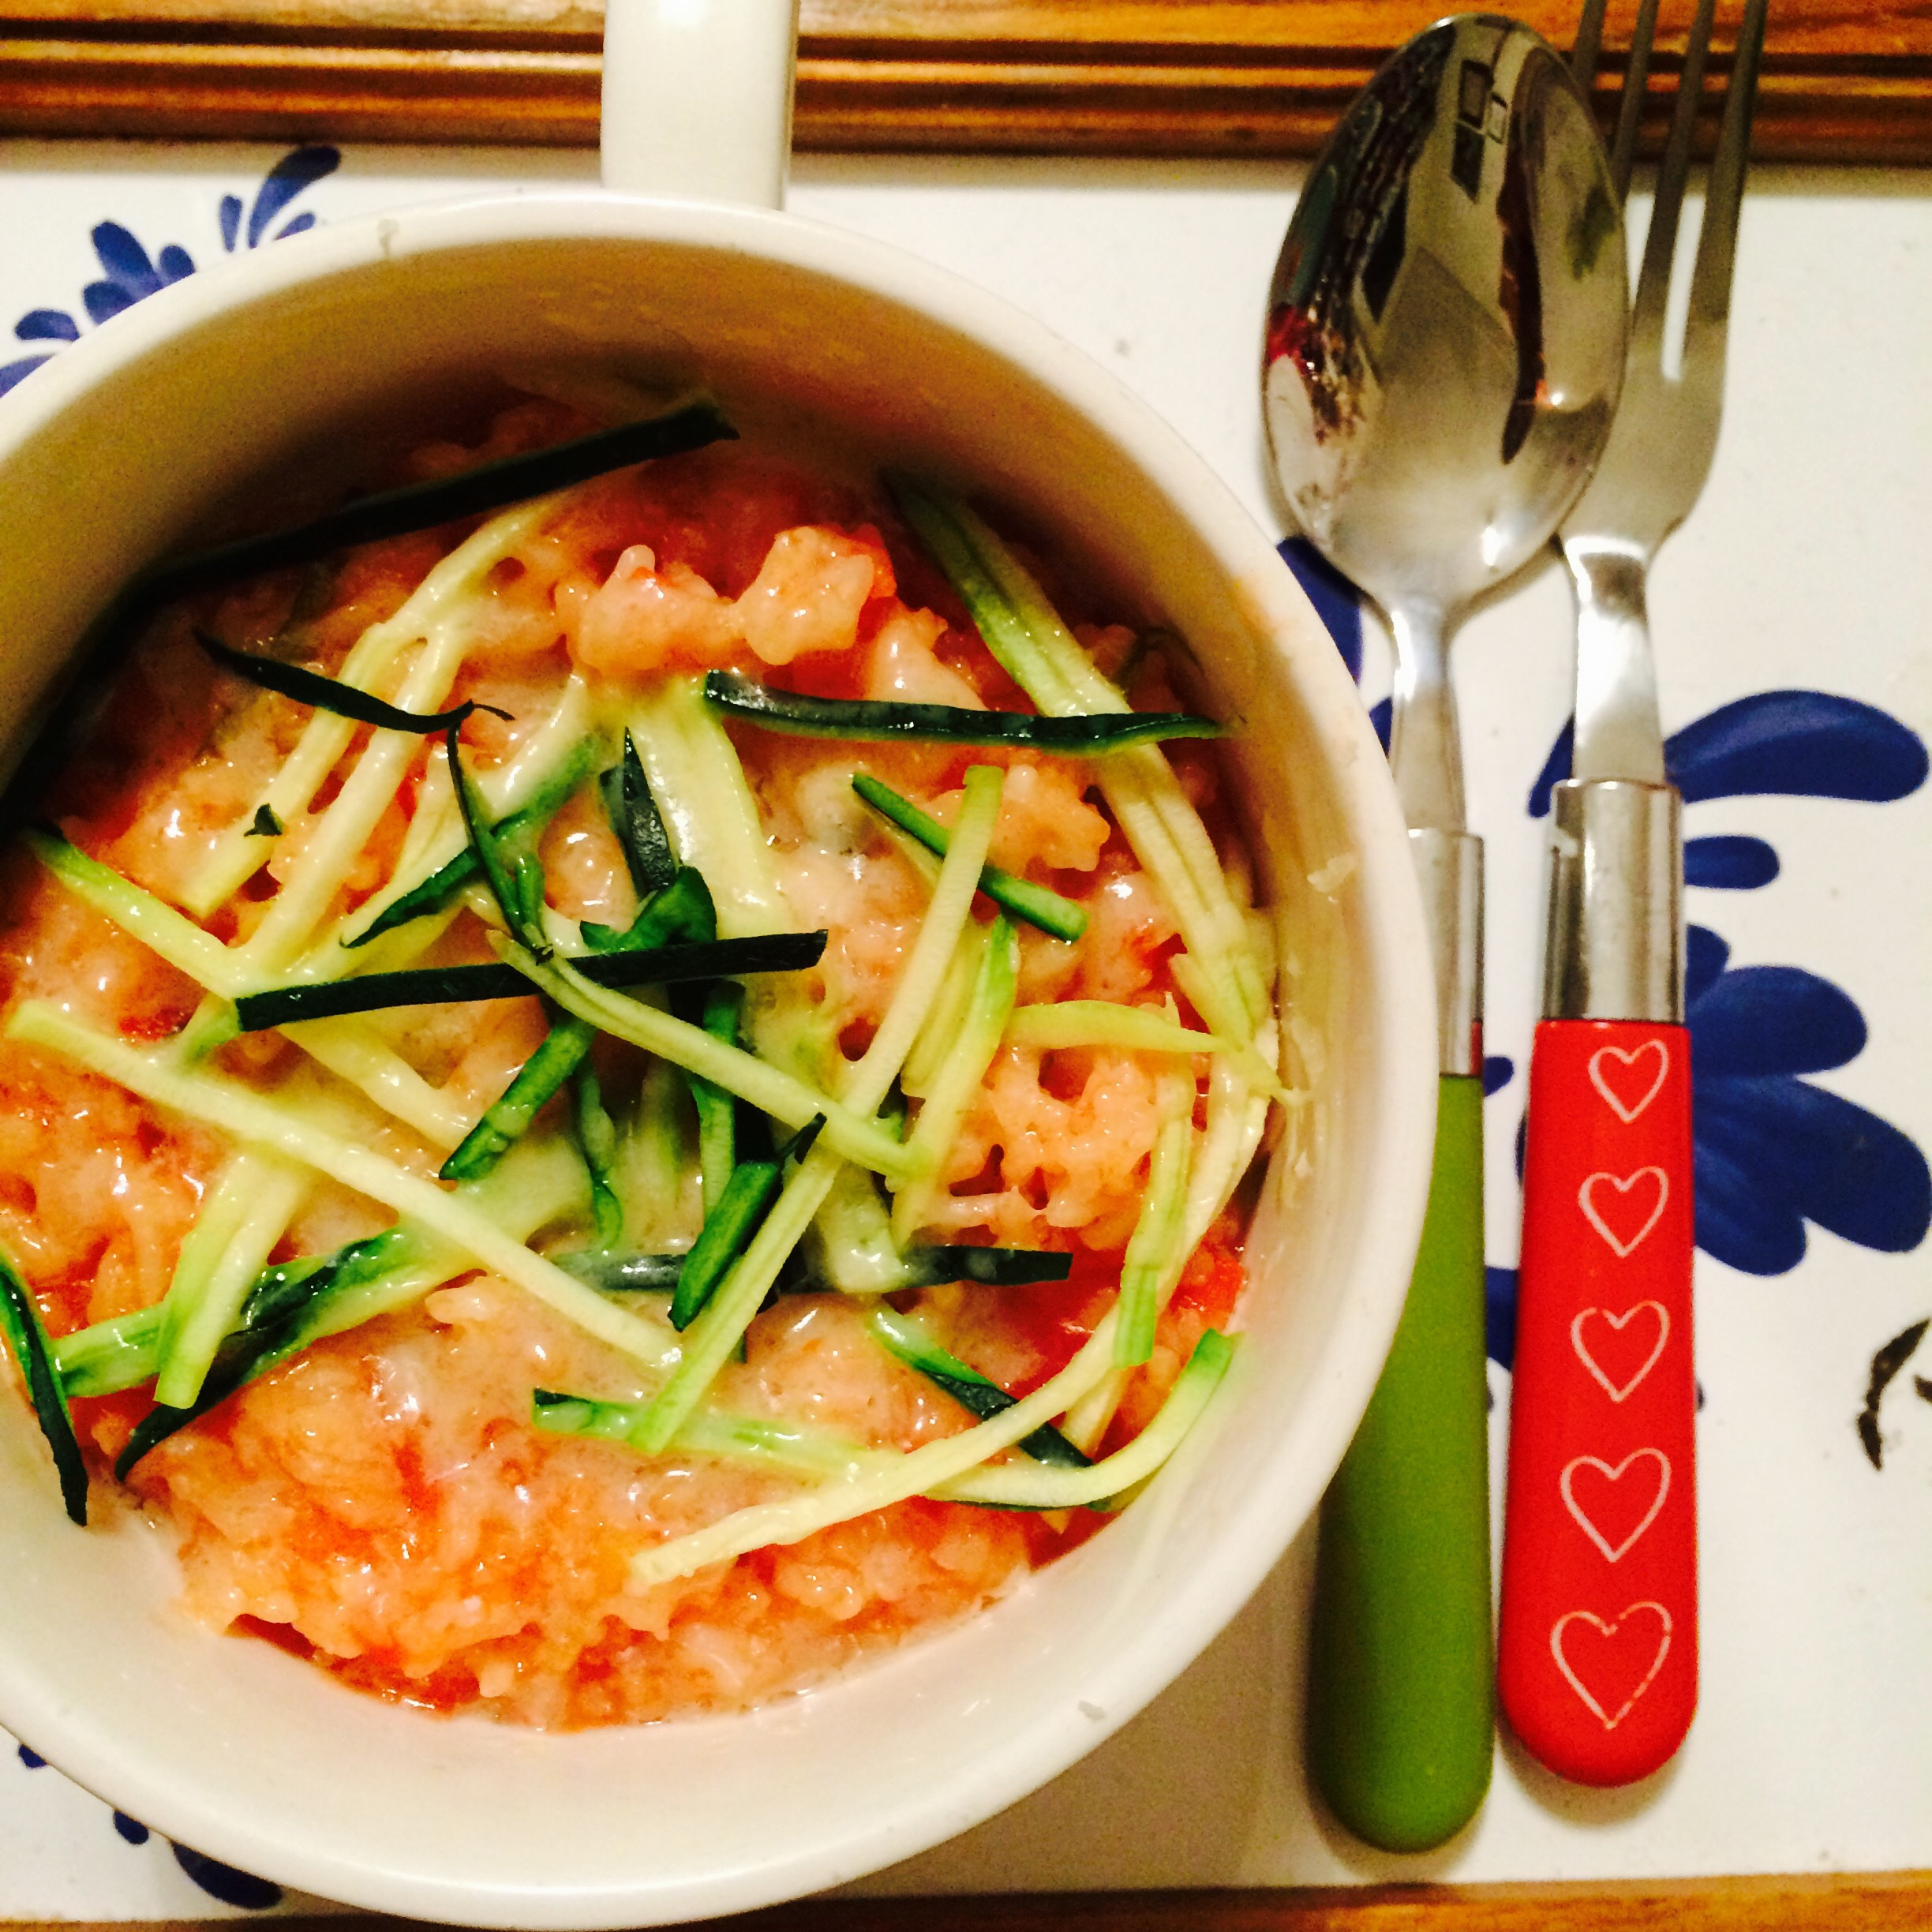 Courgette, Tomato & Cheese Gratin recipe by Jack Monroe